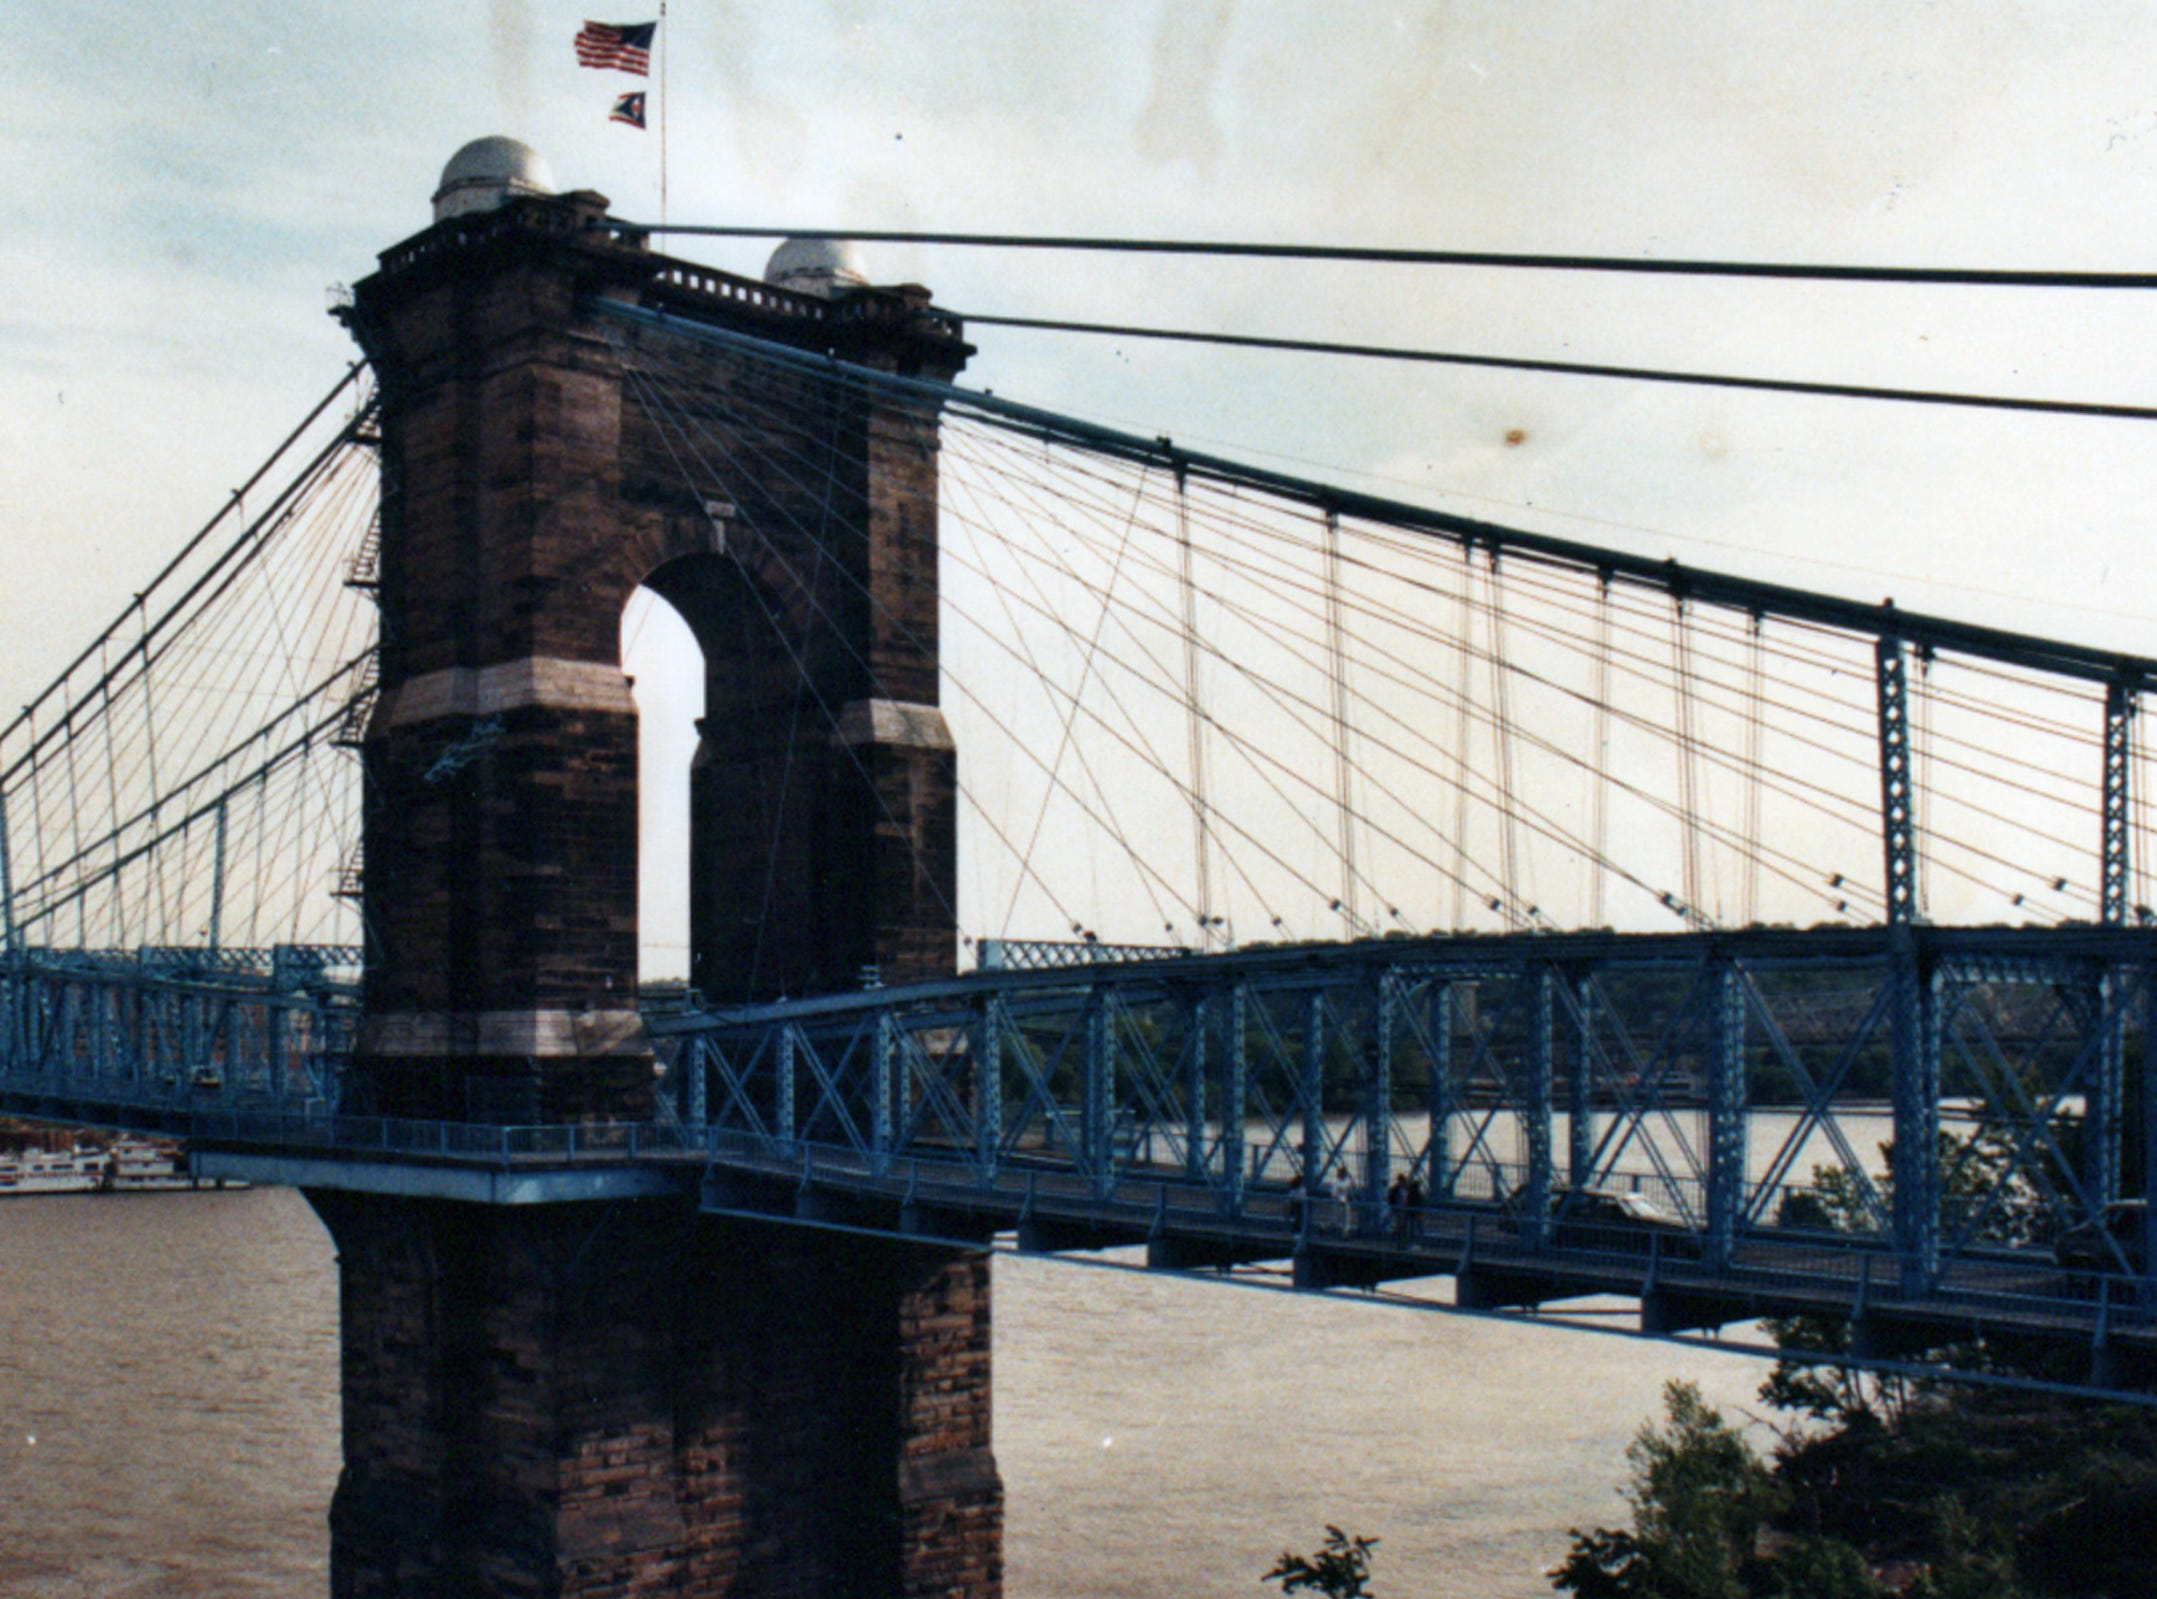 MAY 11, 1990: The John A. Roebling Suspension Bridge, linking Cincinnati and Covington since 1866, is getting a $7 million face lift that will be finished in 1993. The Enquirer/Jim Callaway scanned May 16, 2013